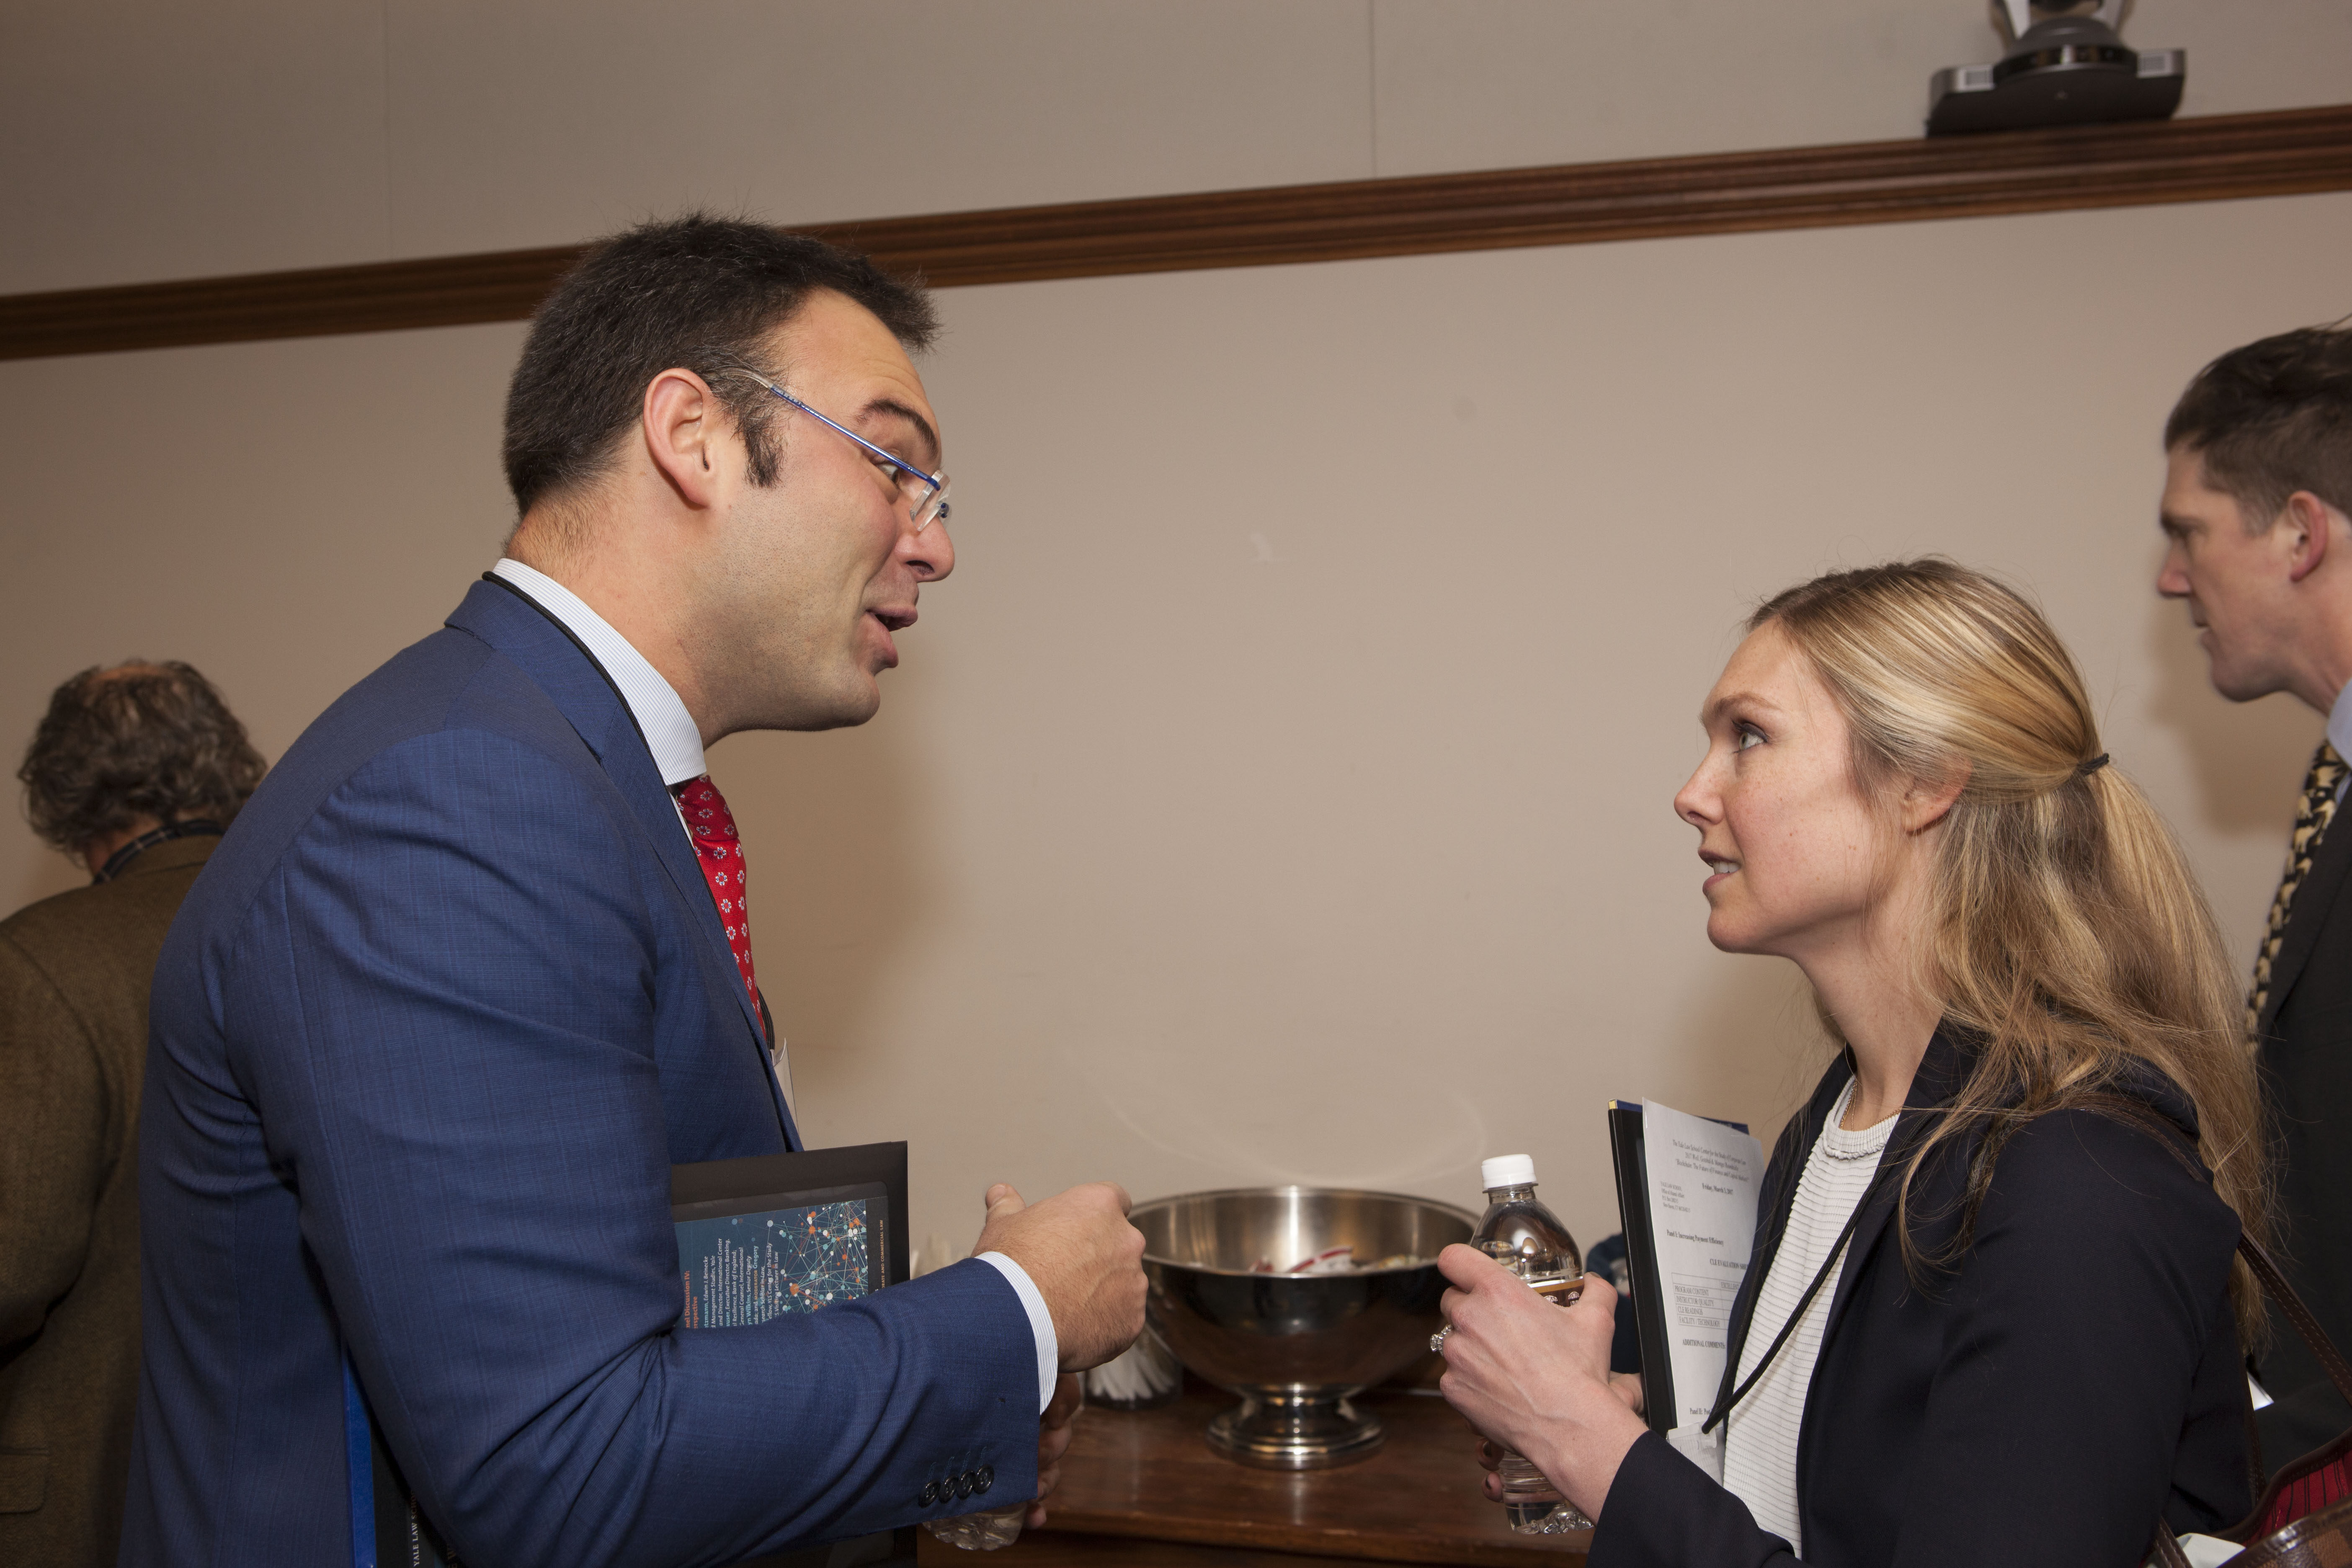 George Mason Law Prof. Paolo Saguato LLM '12 and Brooklyn Law Prof. Christina Parajon Skinner '10